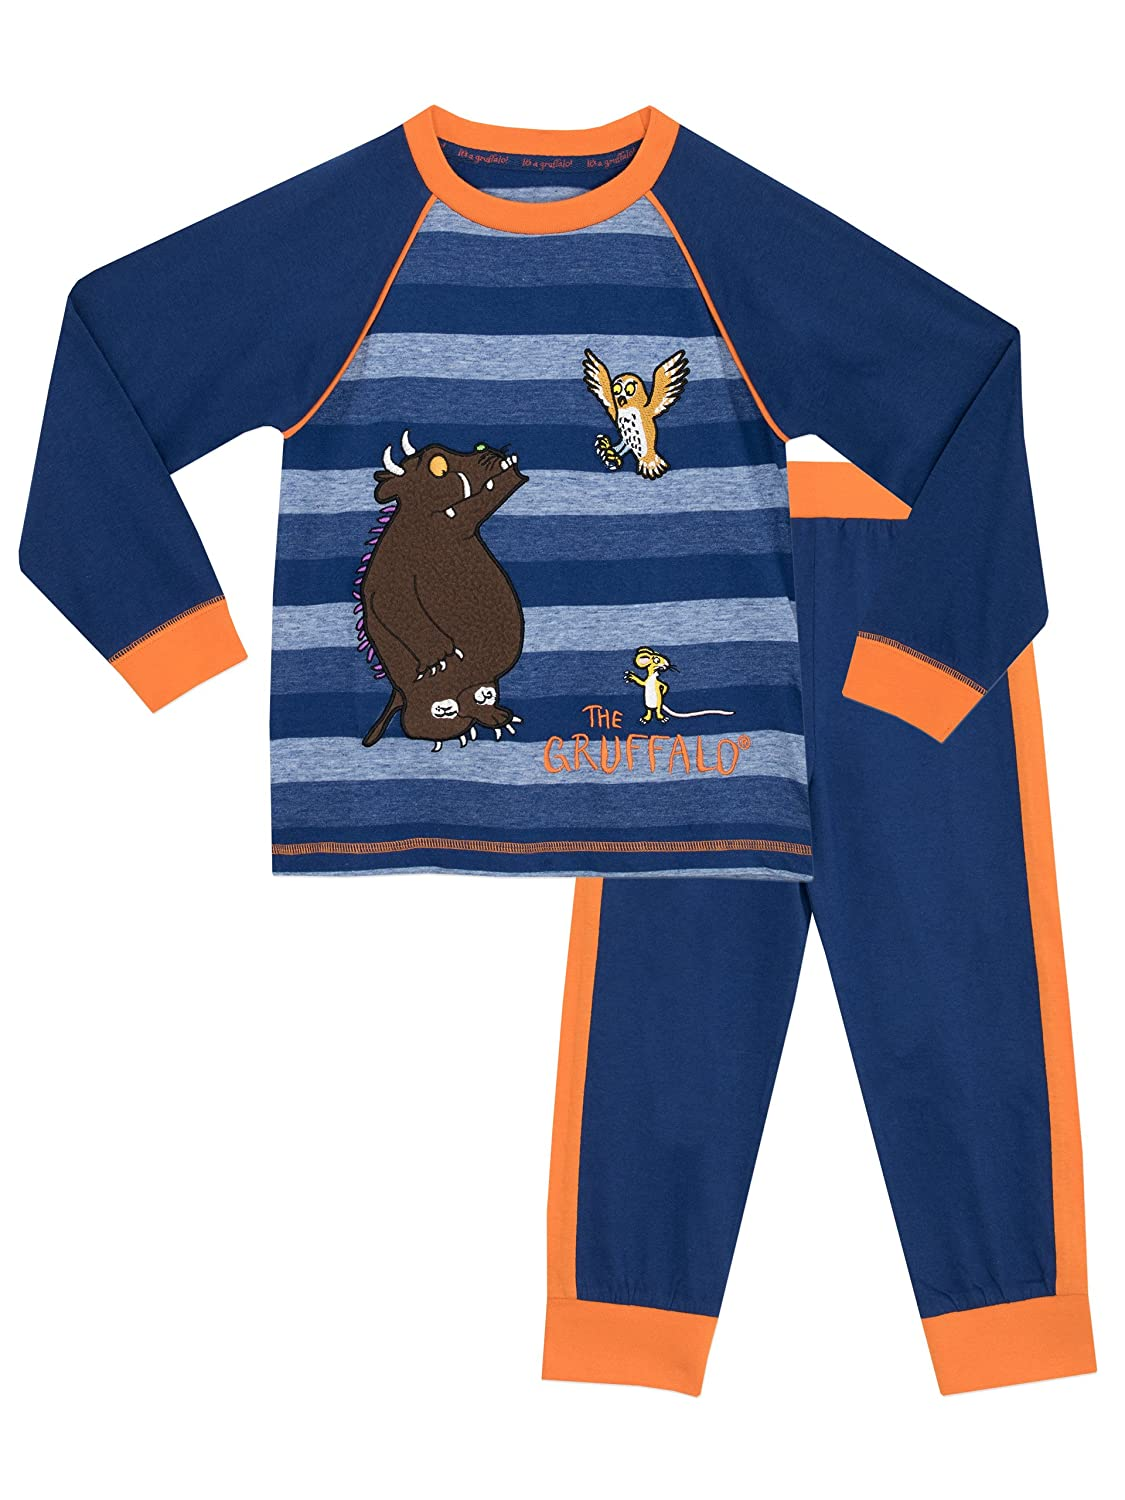 Gruffalo Boys The Grufalo Pyjamas Ages 18 Months to 6 Years